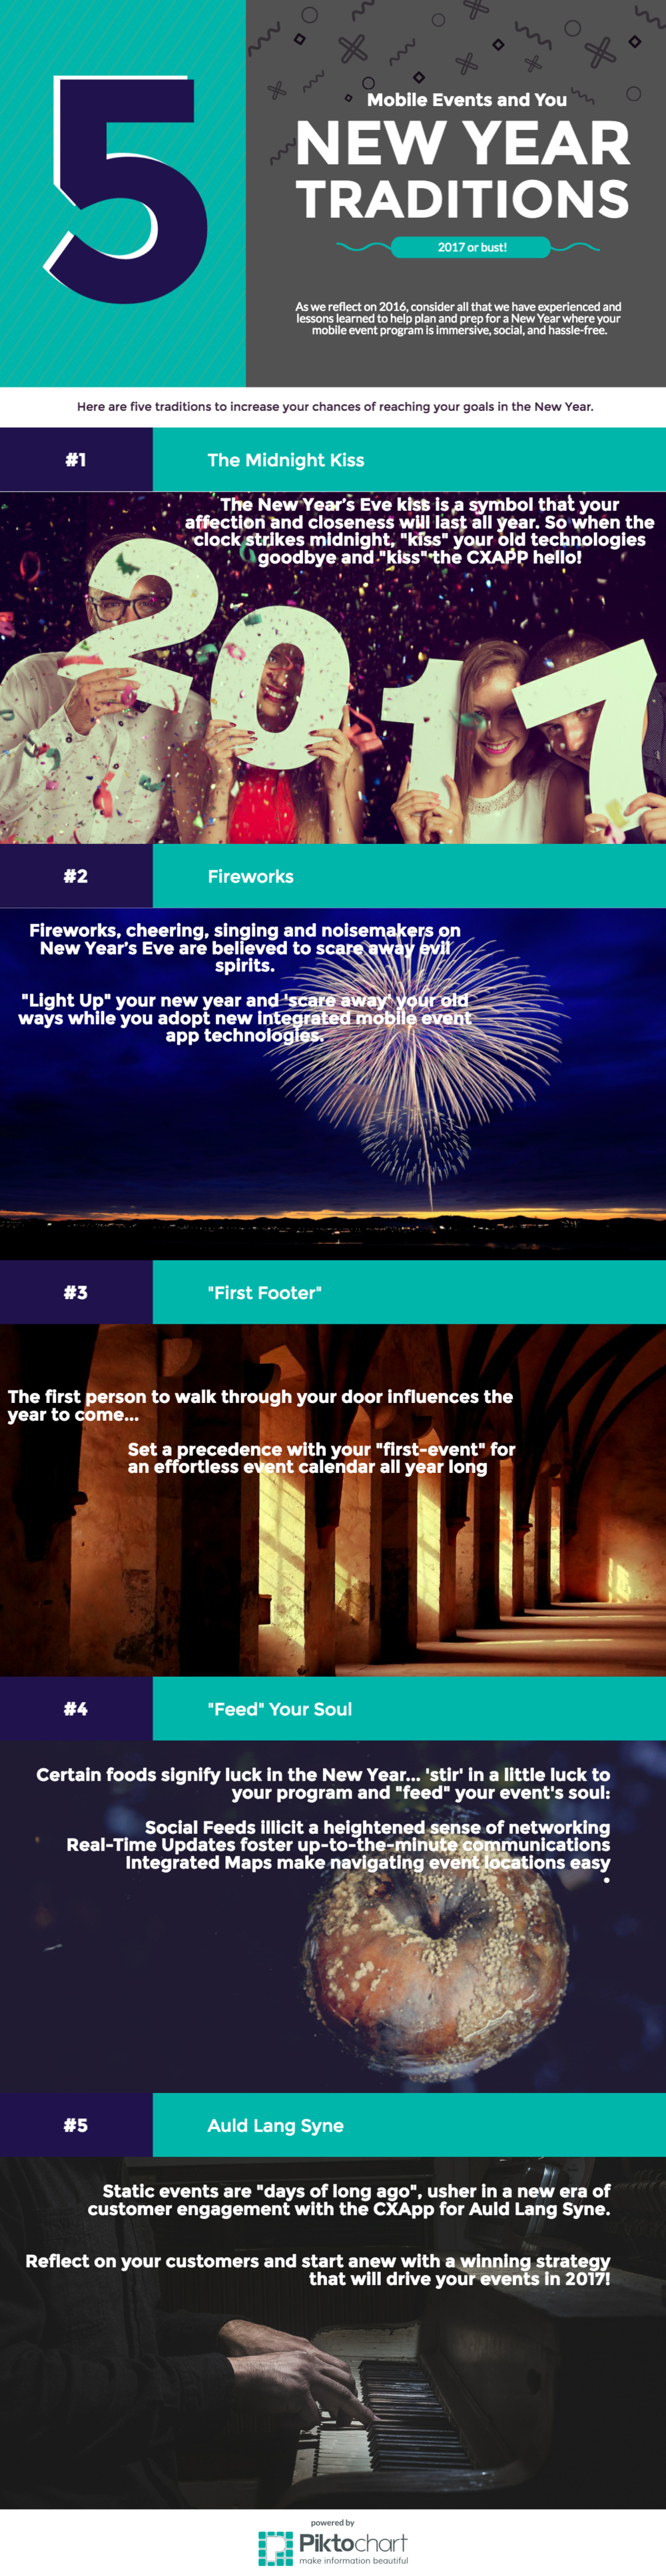 Mobile Events & You: 5 New Year Traditions